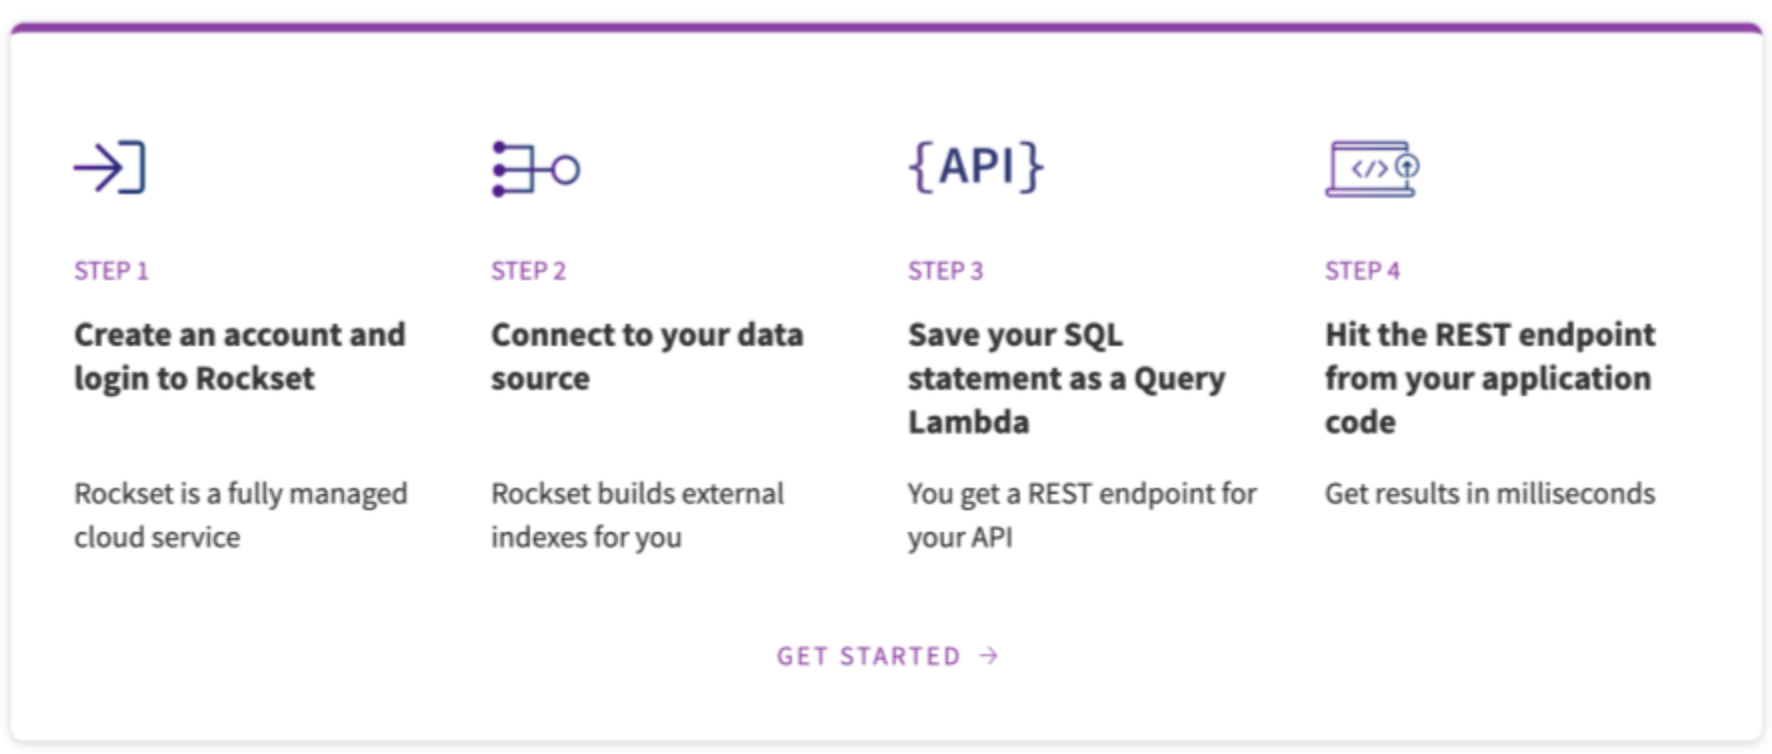 Getting Started with Rockset